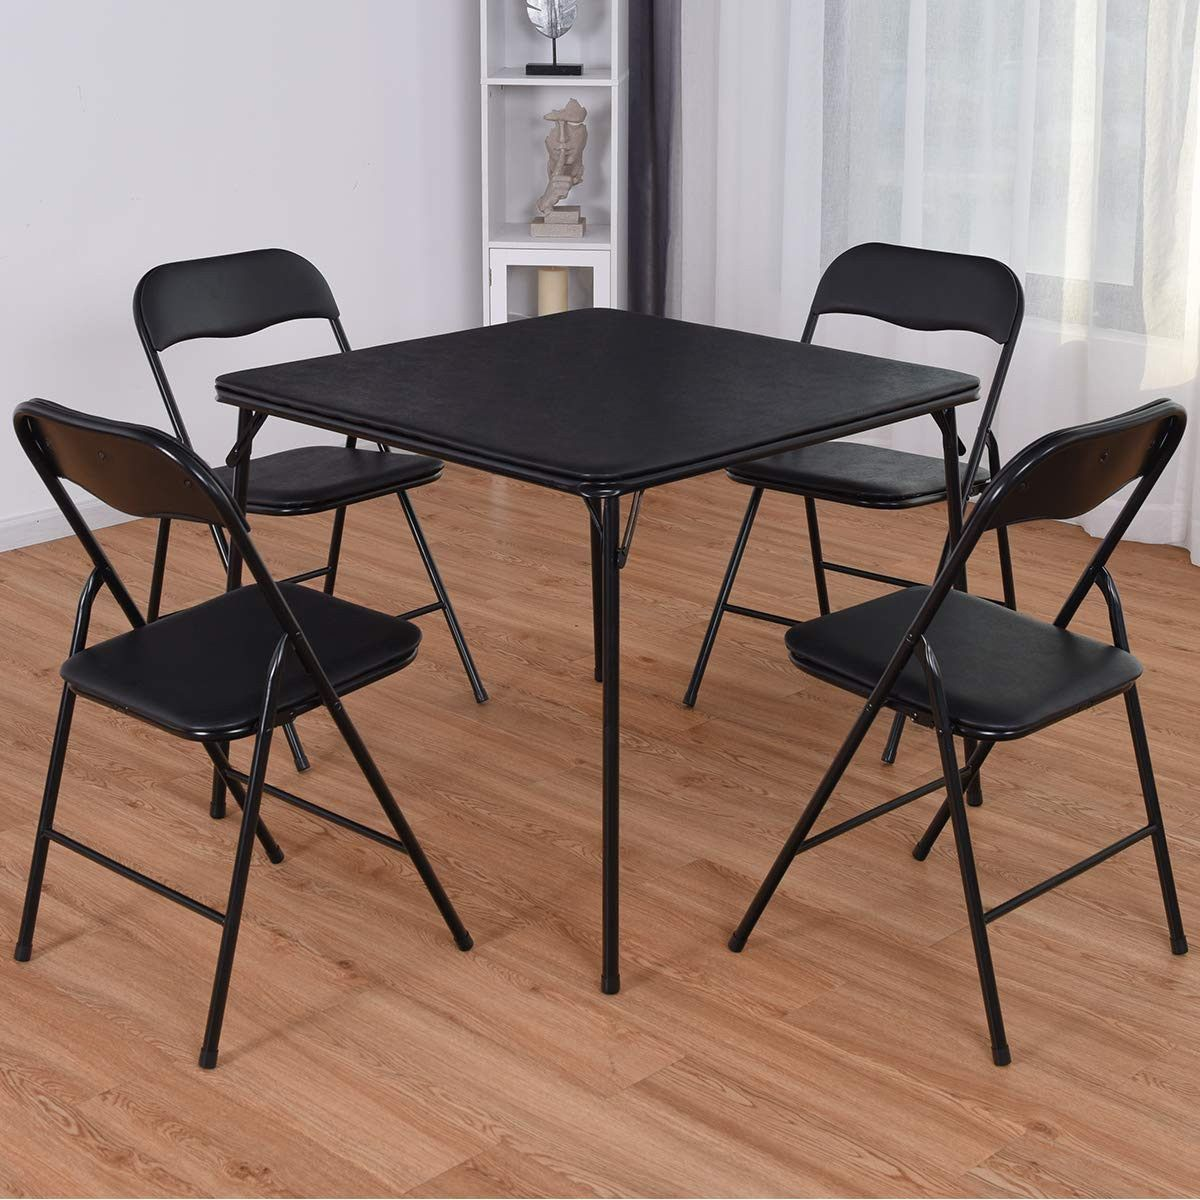 Piece Folding Table And Chairs Set Multi Purpose Kitchen Dining Dining Table In Kitchen Table And Chair Sets Kitchen Table Chairs